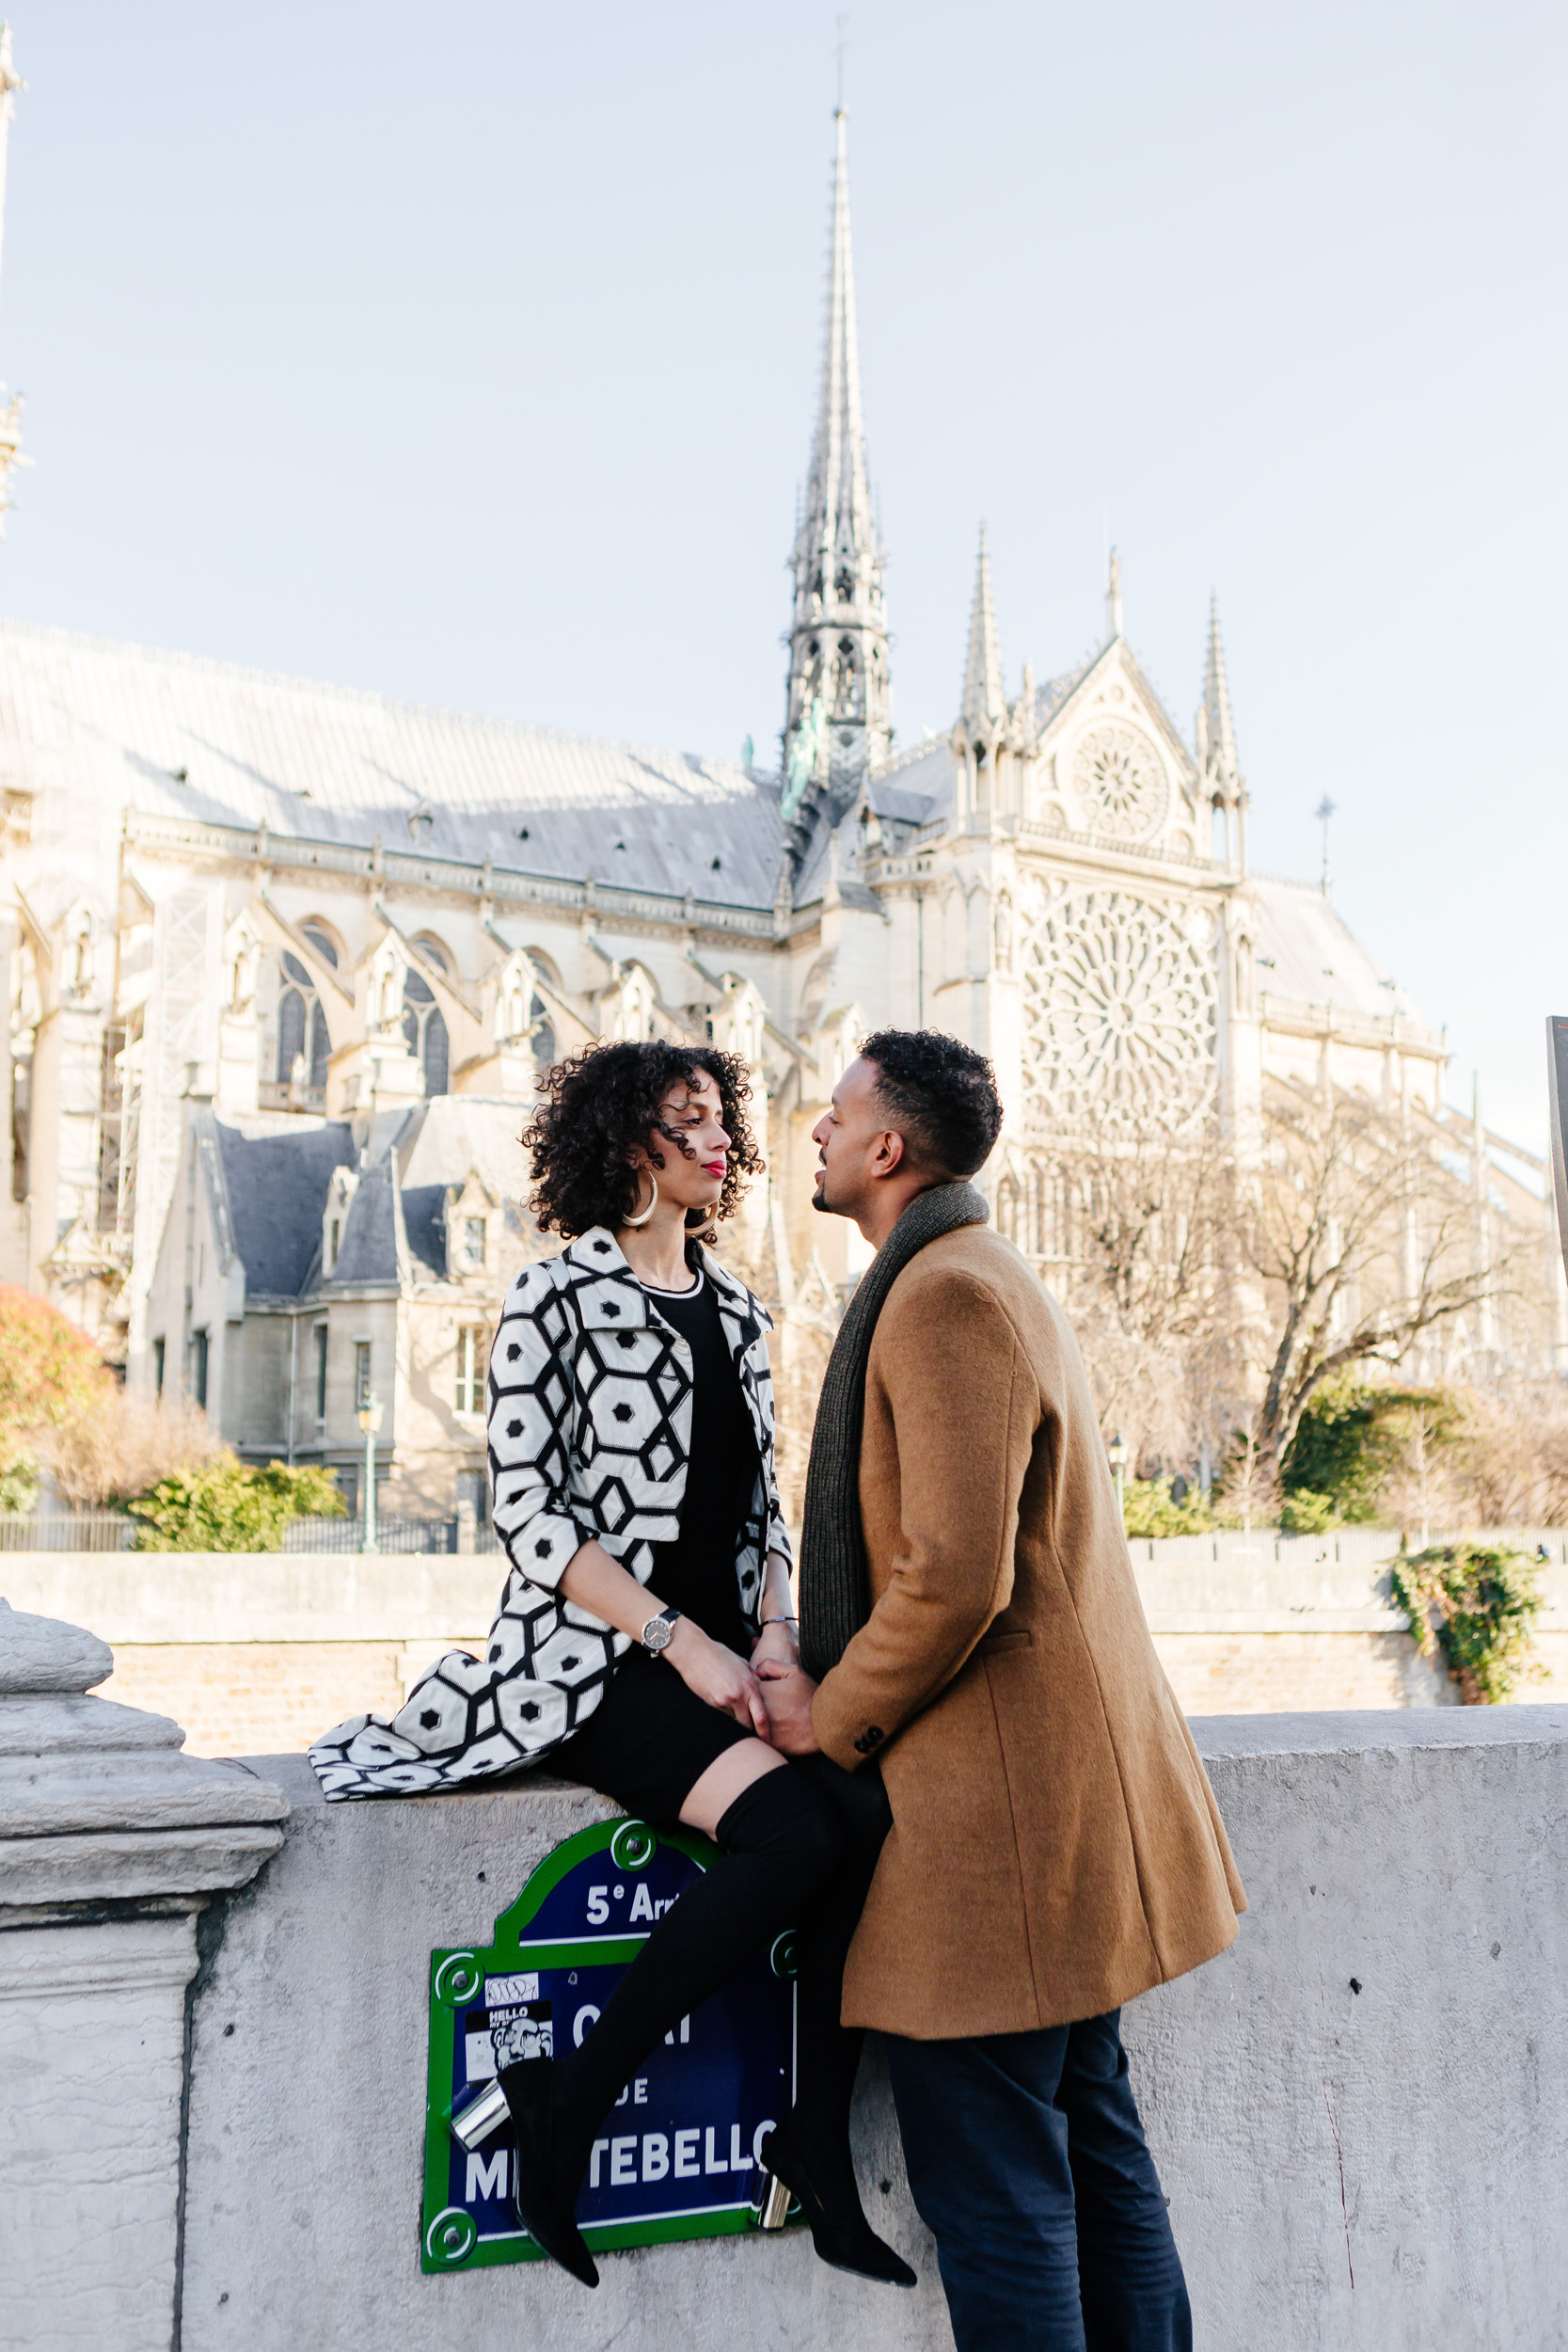 Couple session portrait by Notre Dame captured by Paris Photographer Federico Guendel IheartParis www.iheartparis.fr